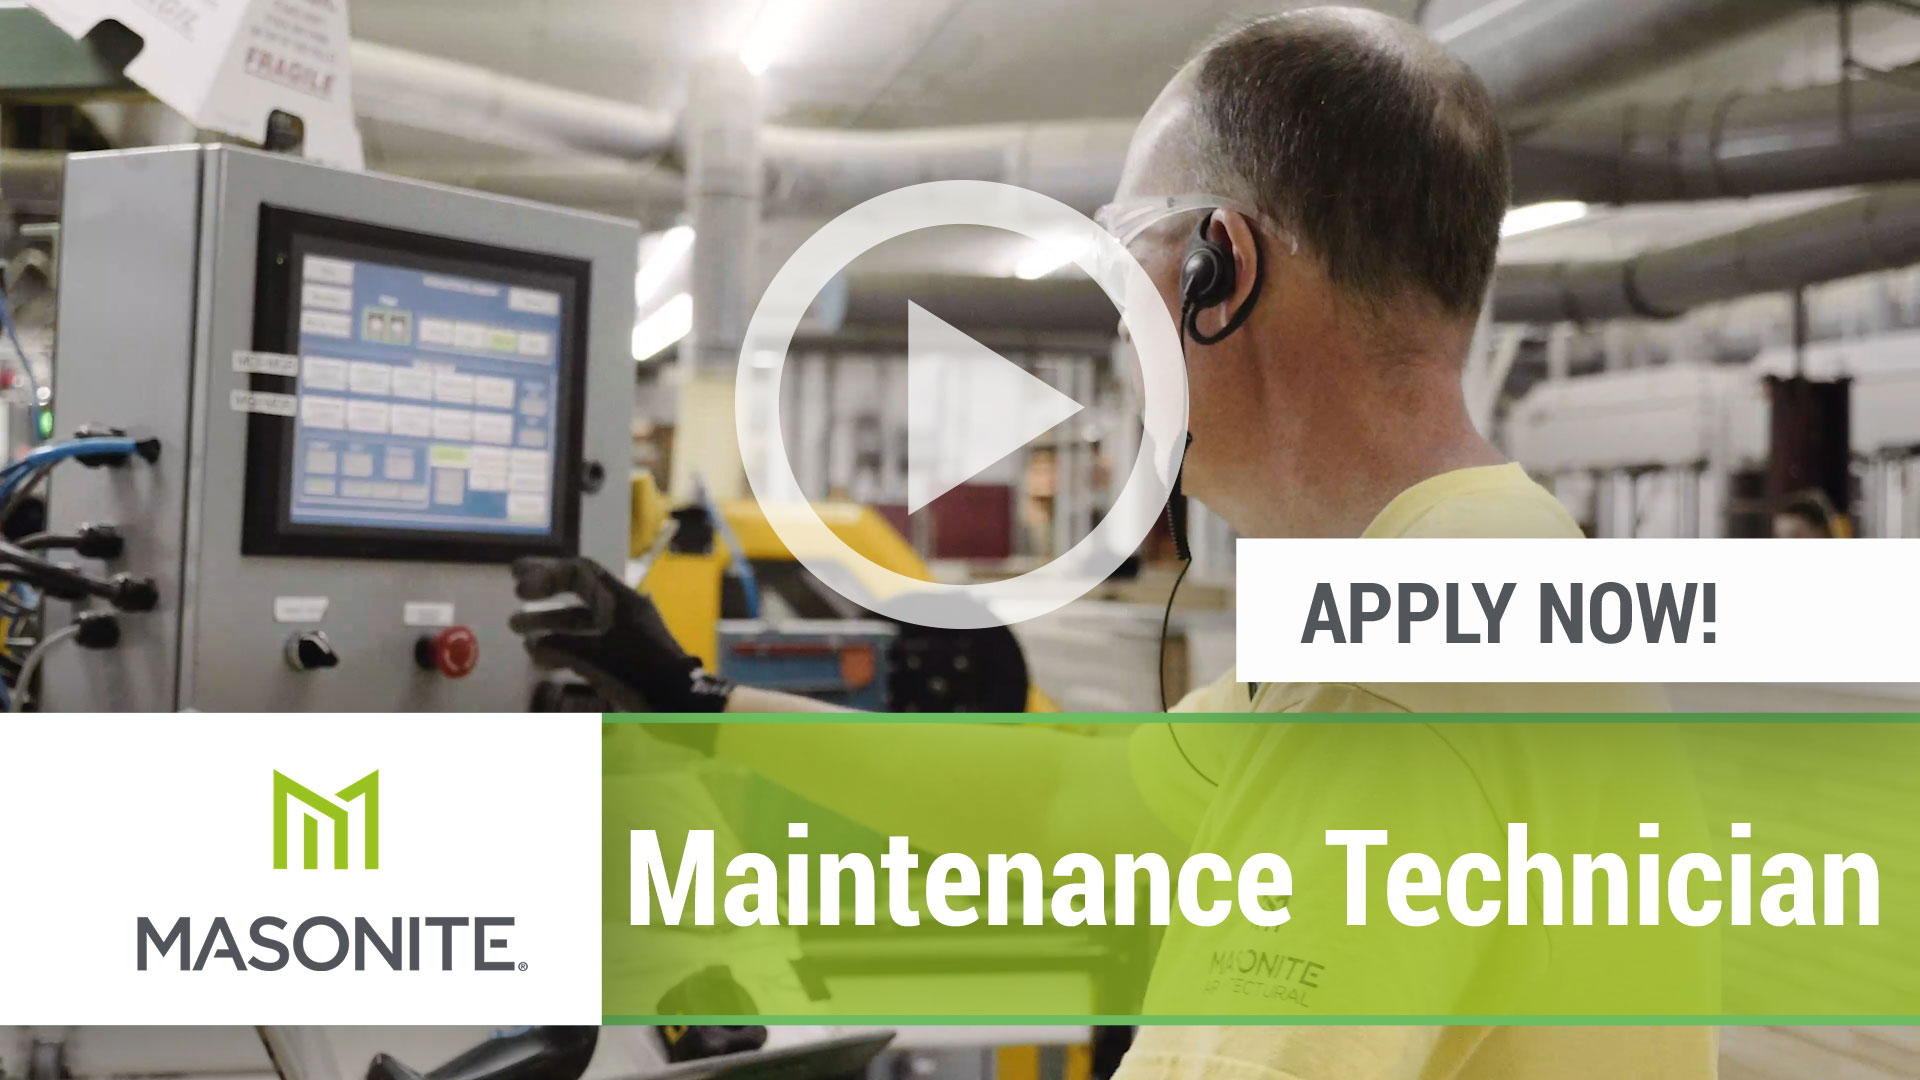 Watch our careers video for available job opening Maintenance Technician in Varies